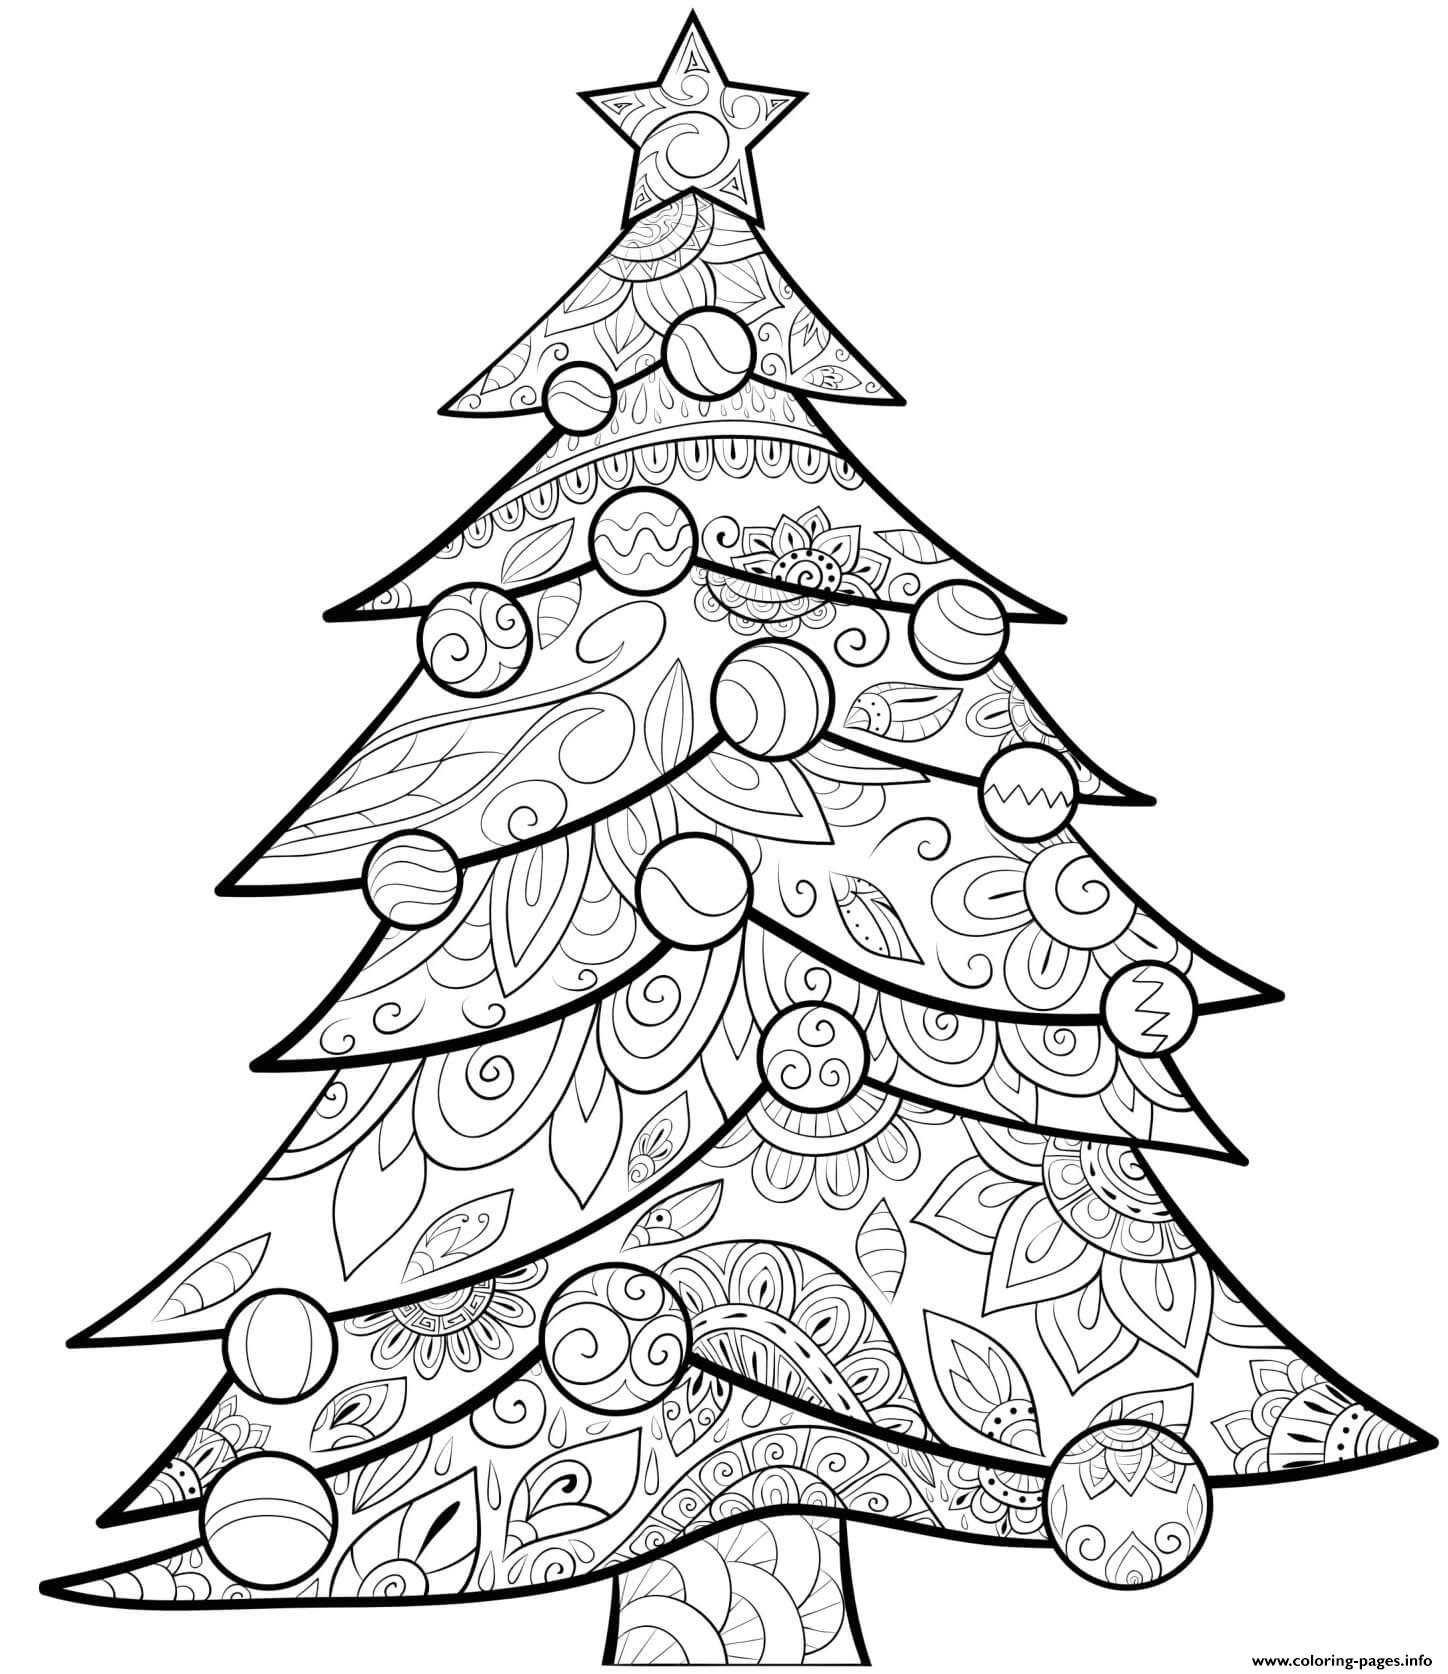 christmas baubles to colour in christmas for adults patterned tree baubles star coloring colour to in christmas baubles